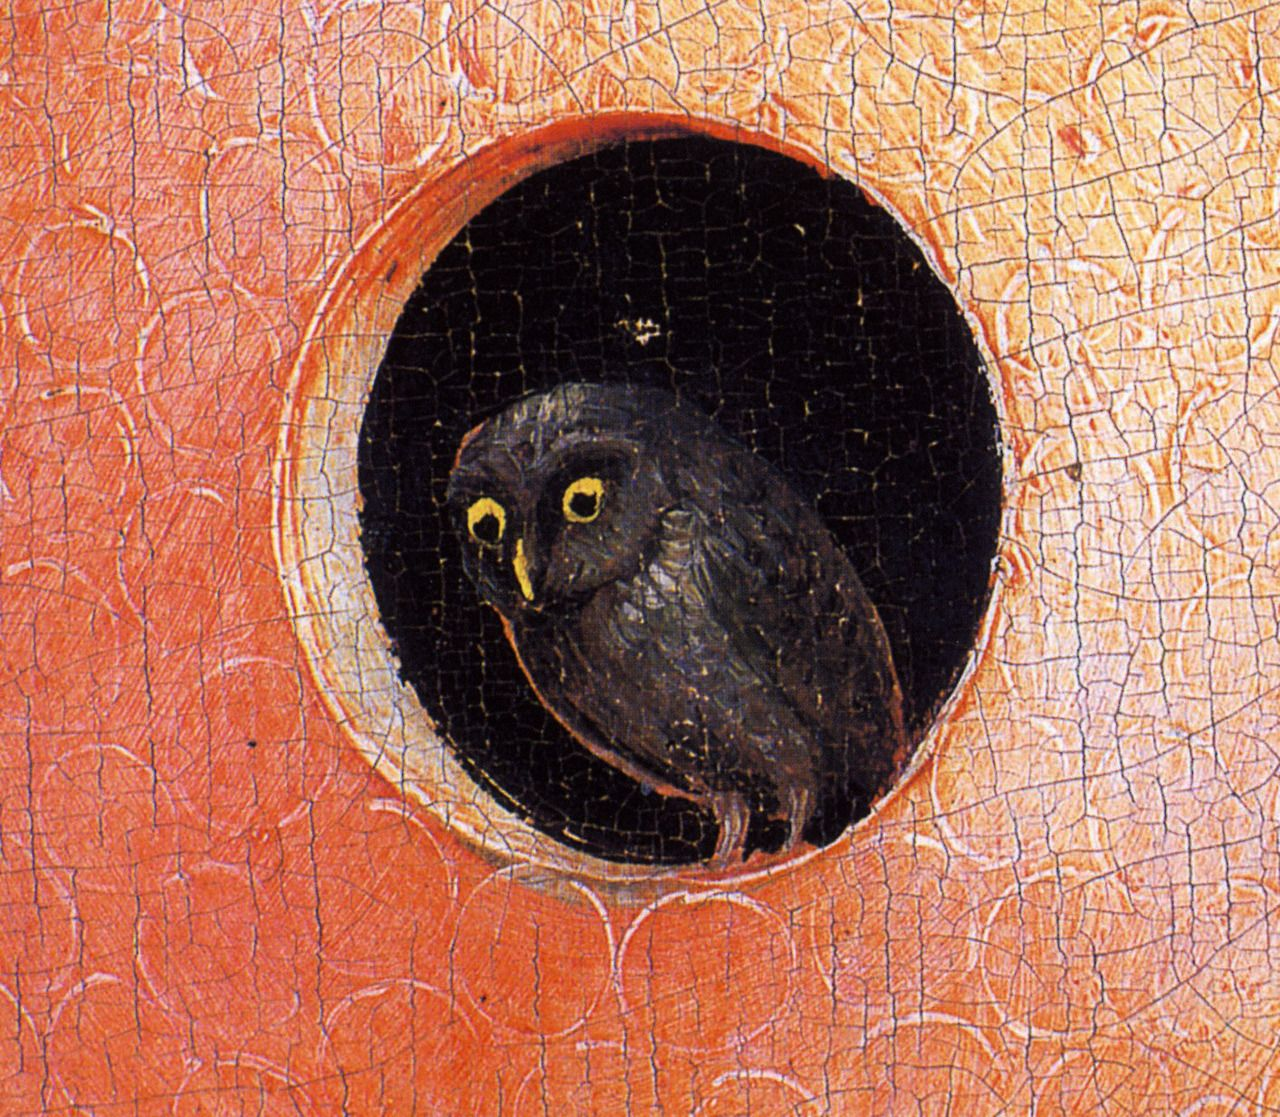 1480-1490 Hieronymus Bosch The Garden of Earthly Delights, Paradise,  Owl center, detail.